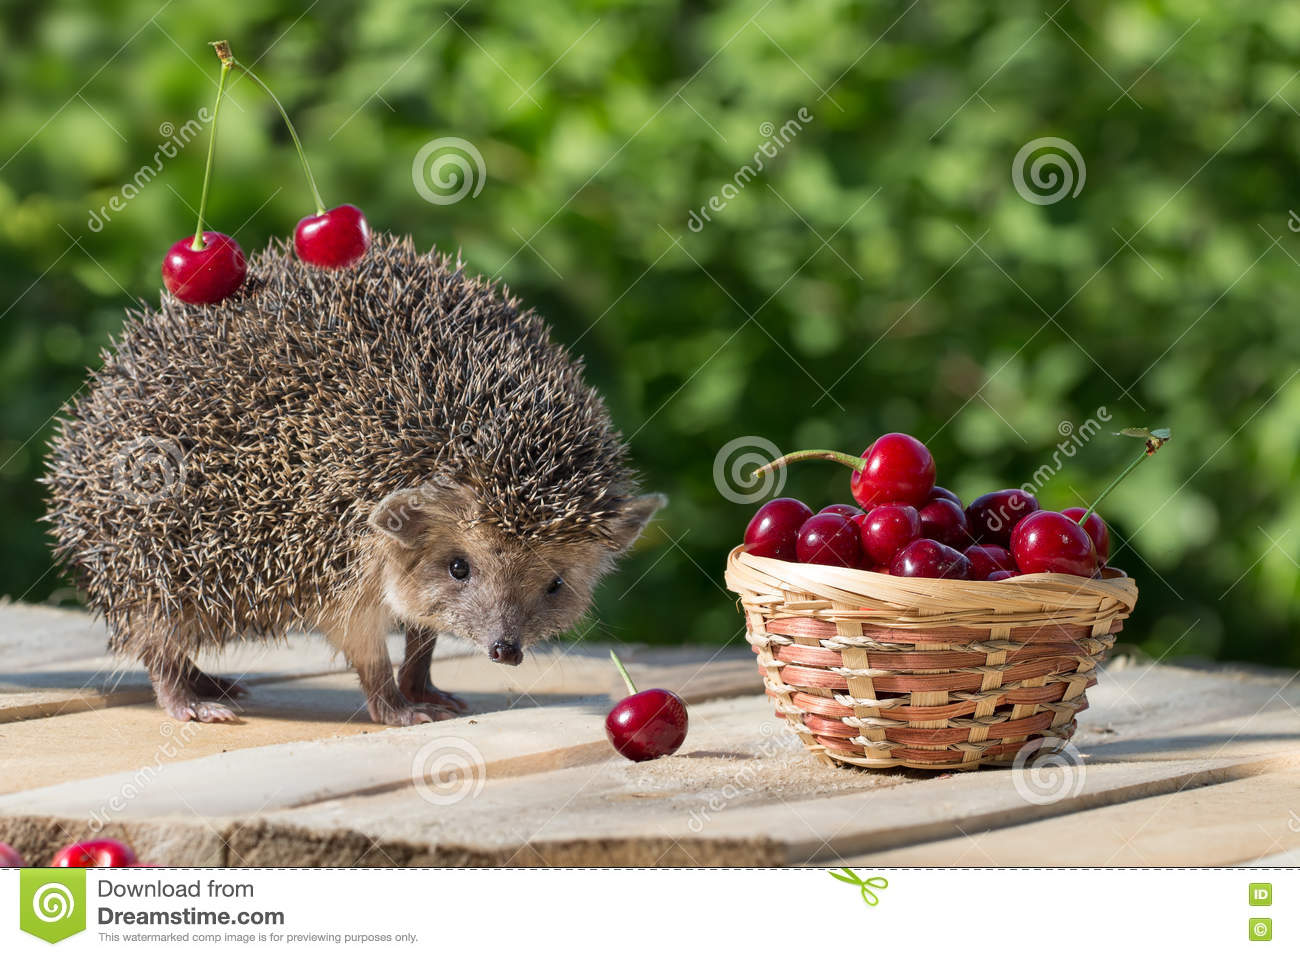 Cute young hedgehog stands near the wicker basket with sweet cherry on a background of green leaves. berrie